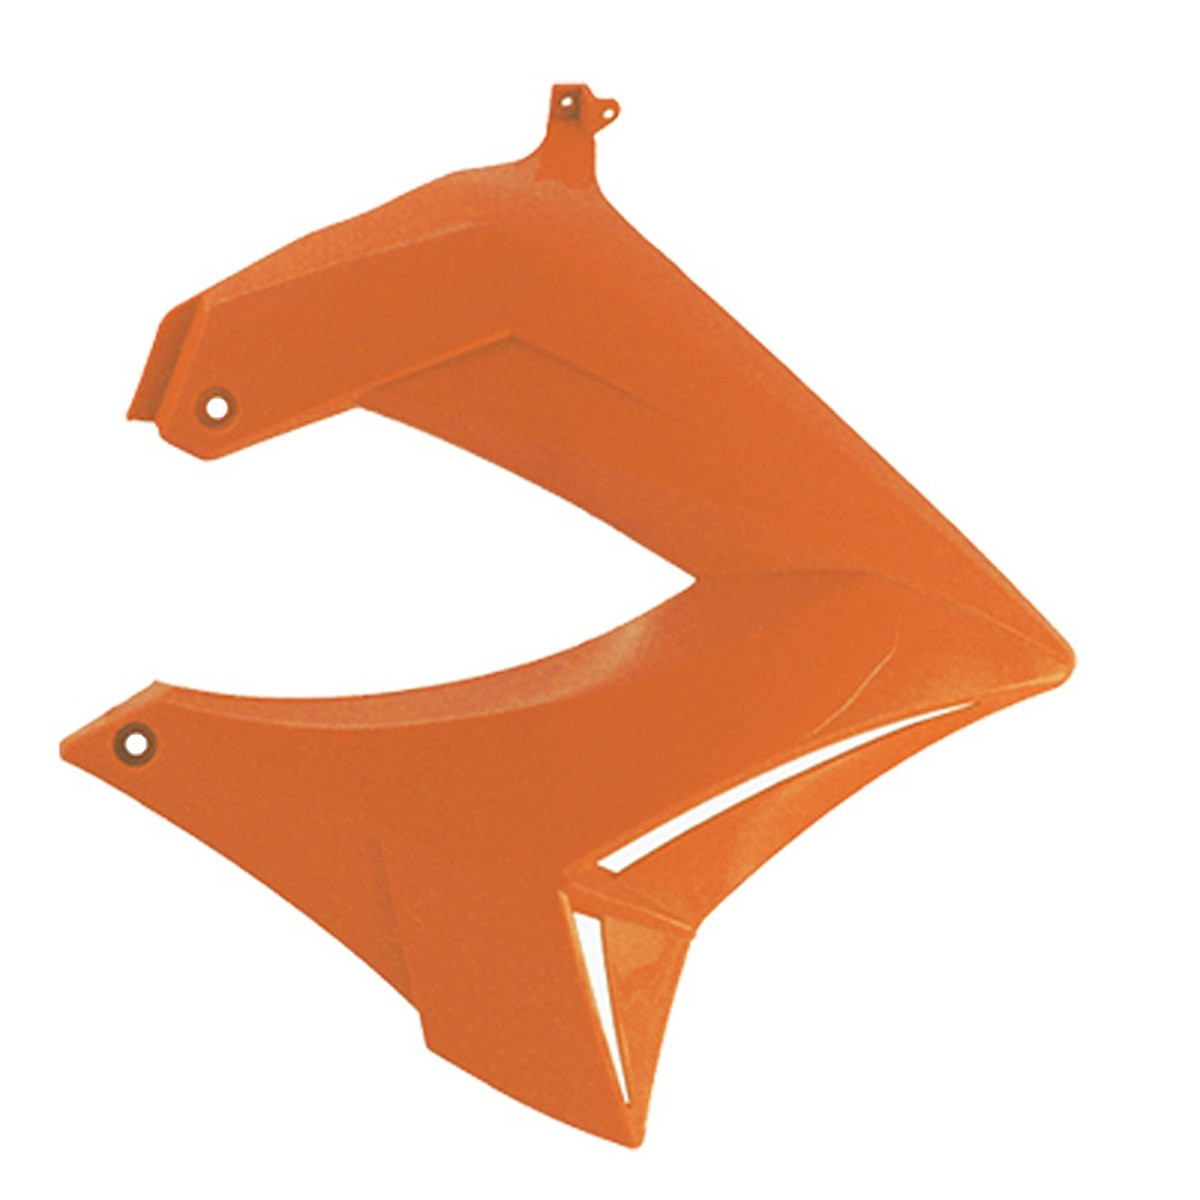 Ouie Réservoir Droit DERBI Senda Extreme, Xrace - Orange